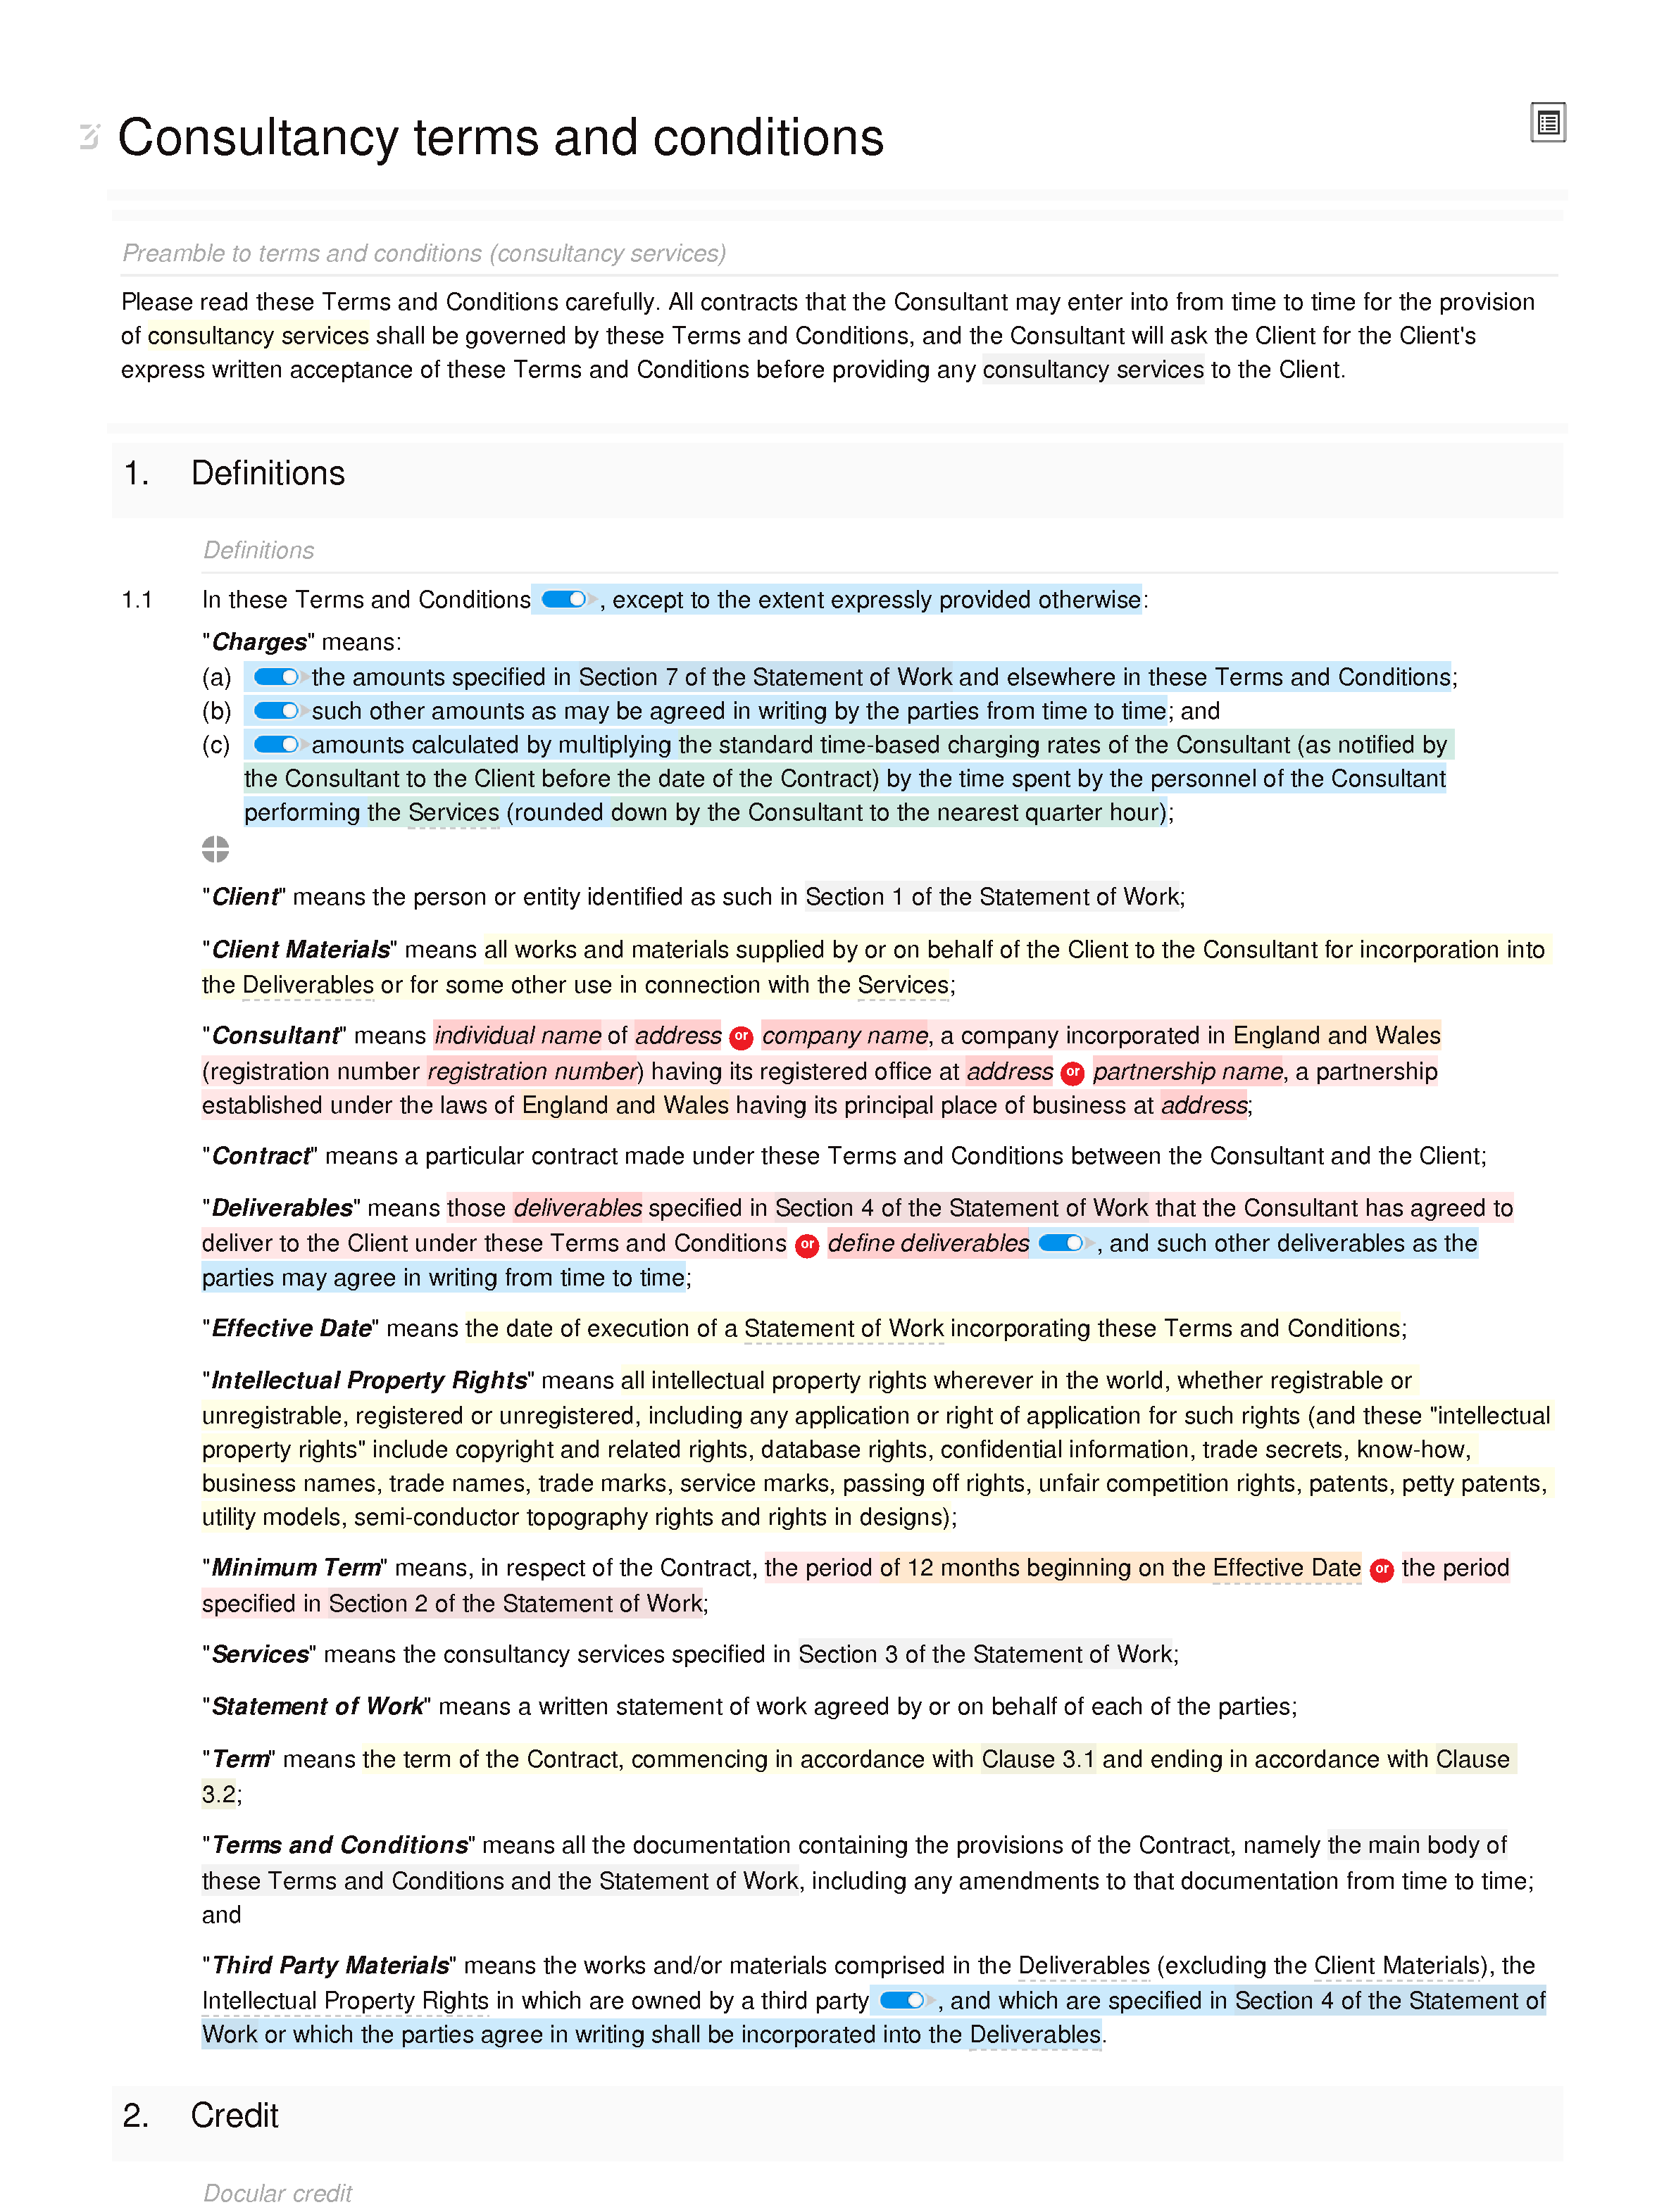 Free consultancy terms and conditions document editor preview